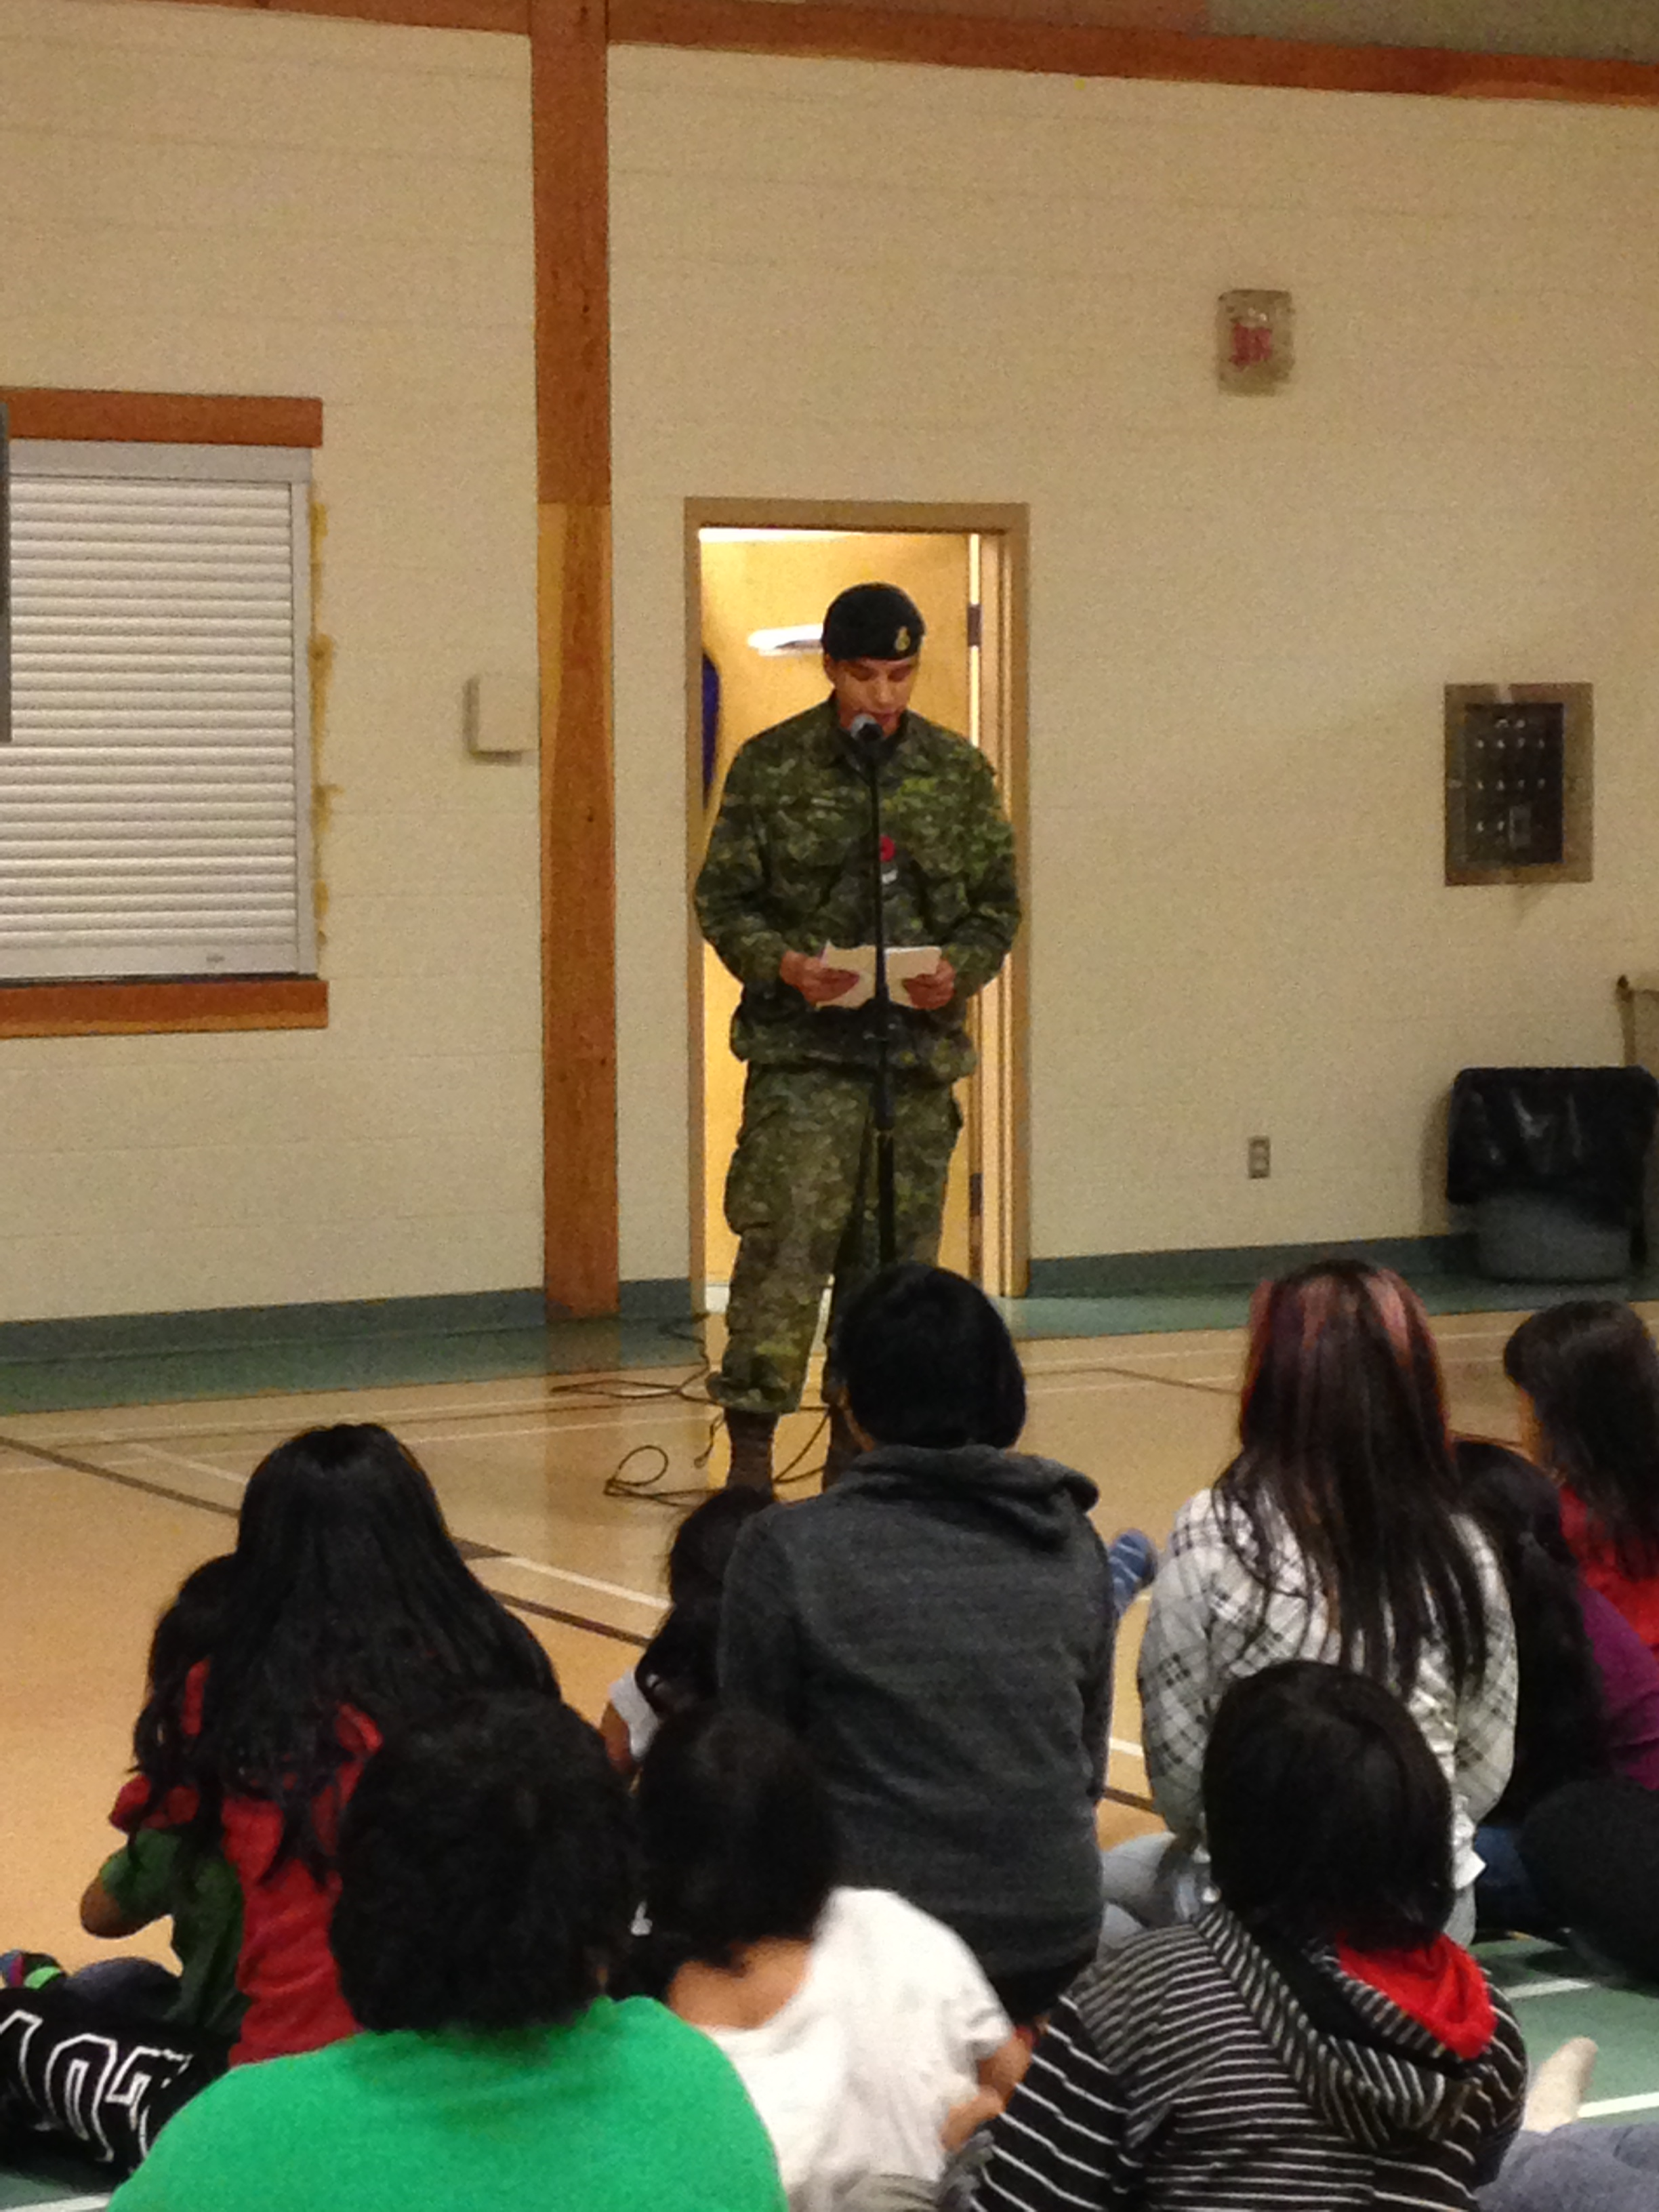 Nov 9 – Corporal Tyler Meekis speaks to students of Victoria Linklater Memorial School in North Spirit Lake First Nation in northern Ontario about his life in the Canadian Armed Forces and shares his experiences of what it means to serve. Photo courtesy of Adrian Lawrence, Principal, Victoria Linklater Memorial School, North Spirit Lake First Nation, Ontario.